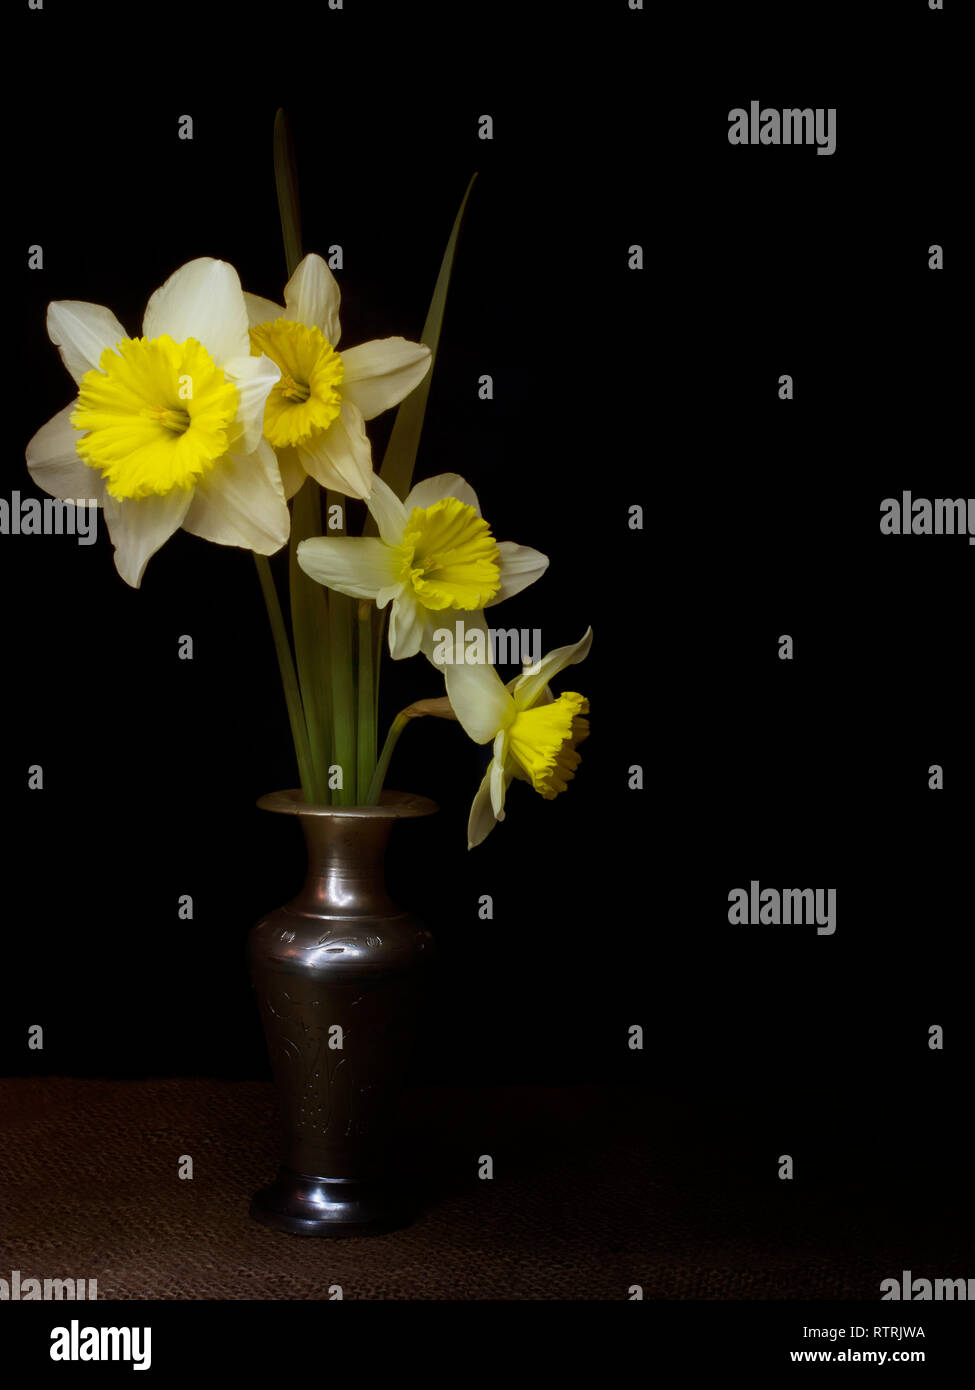 Spring daffodils still life, light painting chiaroscuro style, in vase, with copyspace. - Stock Image